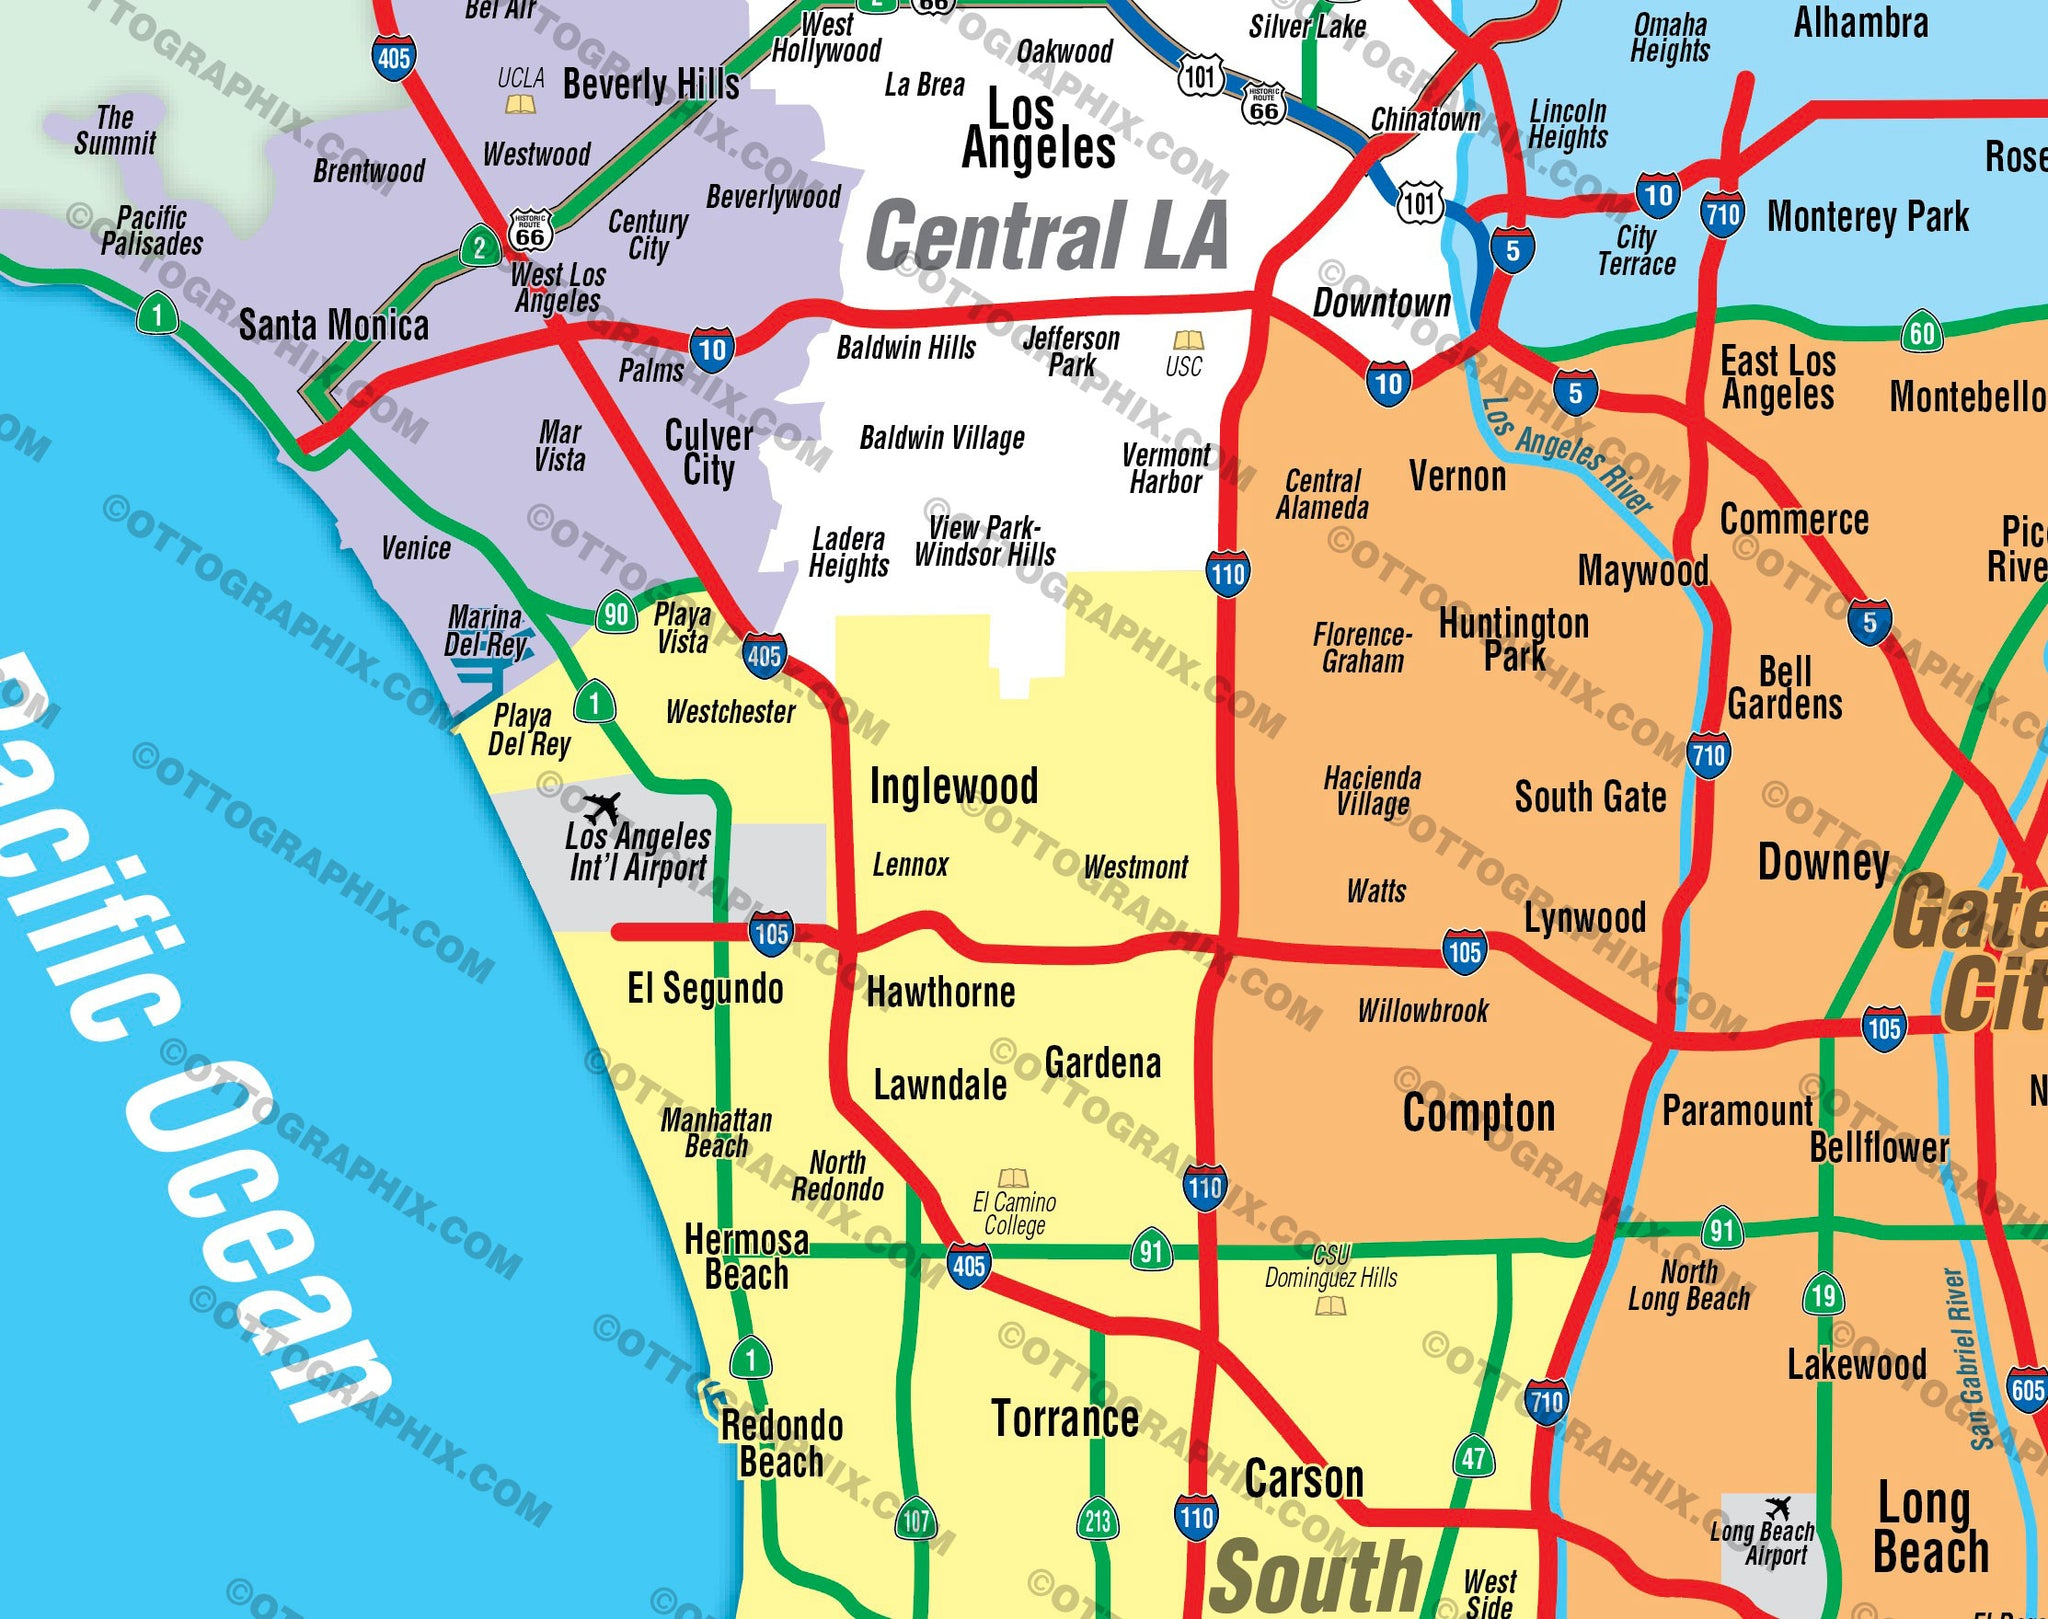 Los Angeles Map By Zip Codes.Los Angeles County Map South No Zip Codes Otto Maps